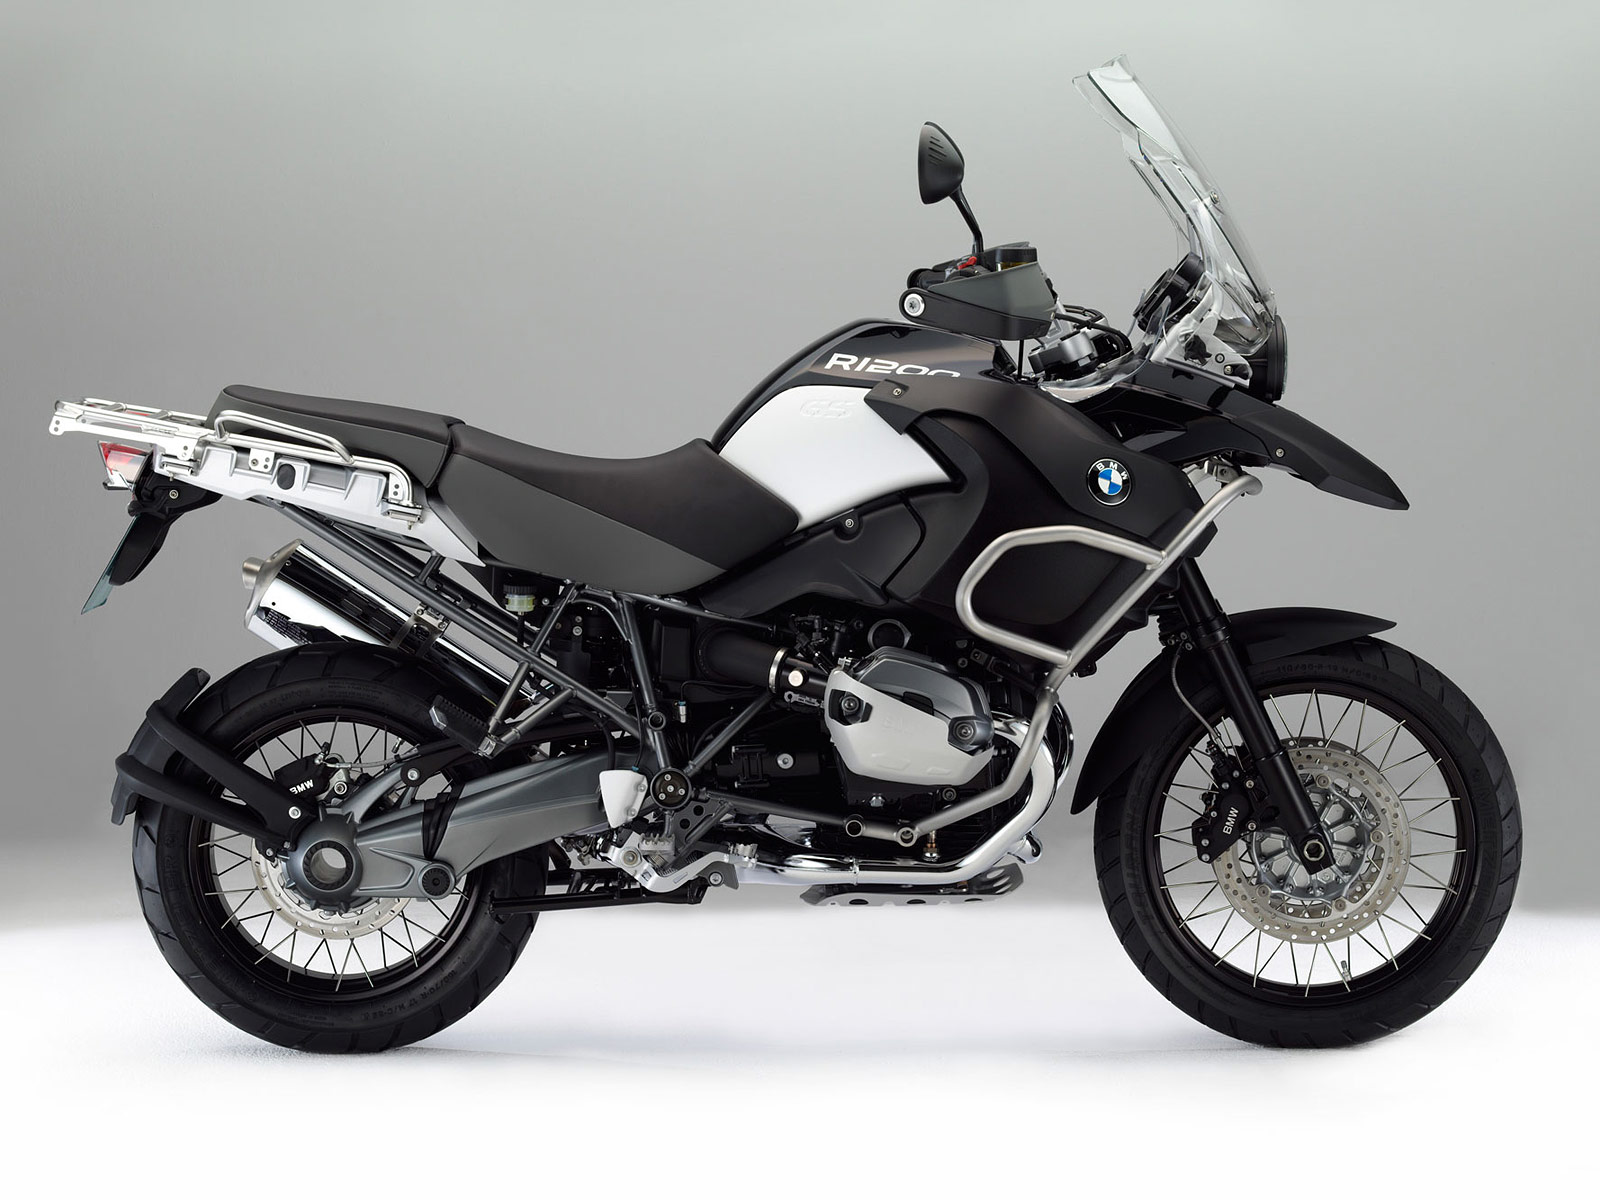 http://3.bp.blogspot.com/-b5ntLNLj7WQ/TouSg7wTwnI/AAAAAAAAFBo/UeaTuK48y48/s1600/2012_BMW_R1200GS_Adventure_Triple_Black_desktop-wallpapers_2.jpg